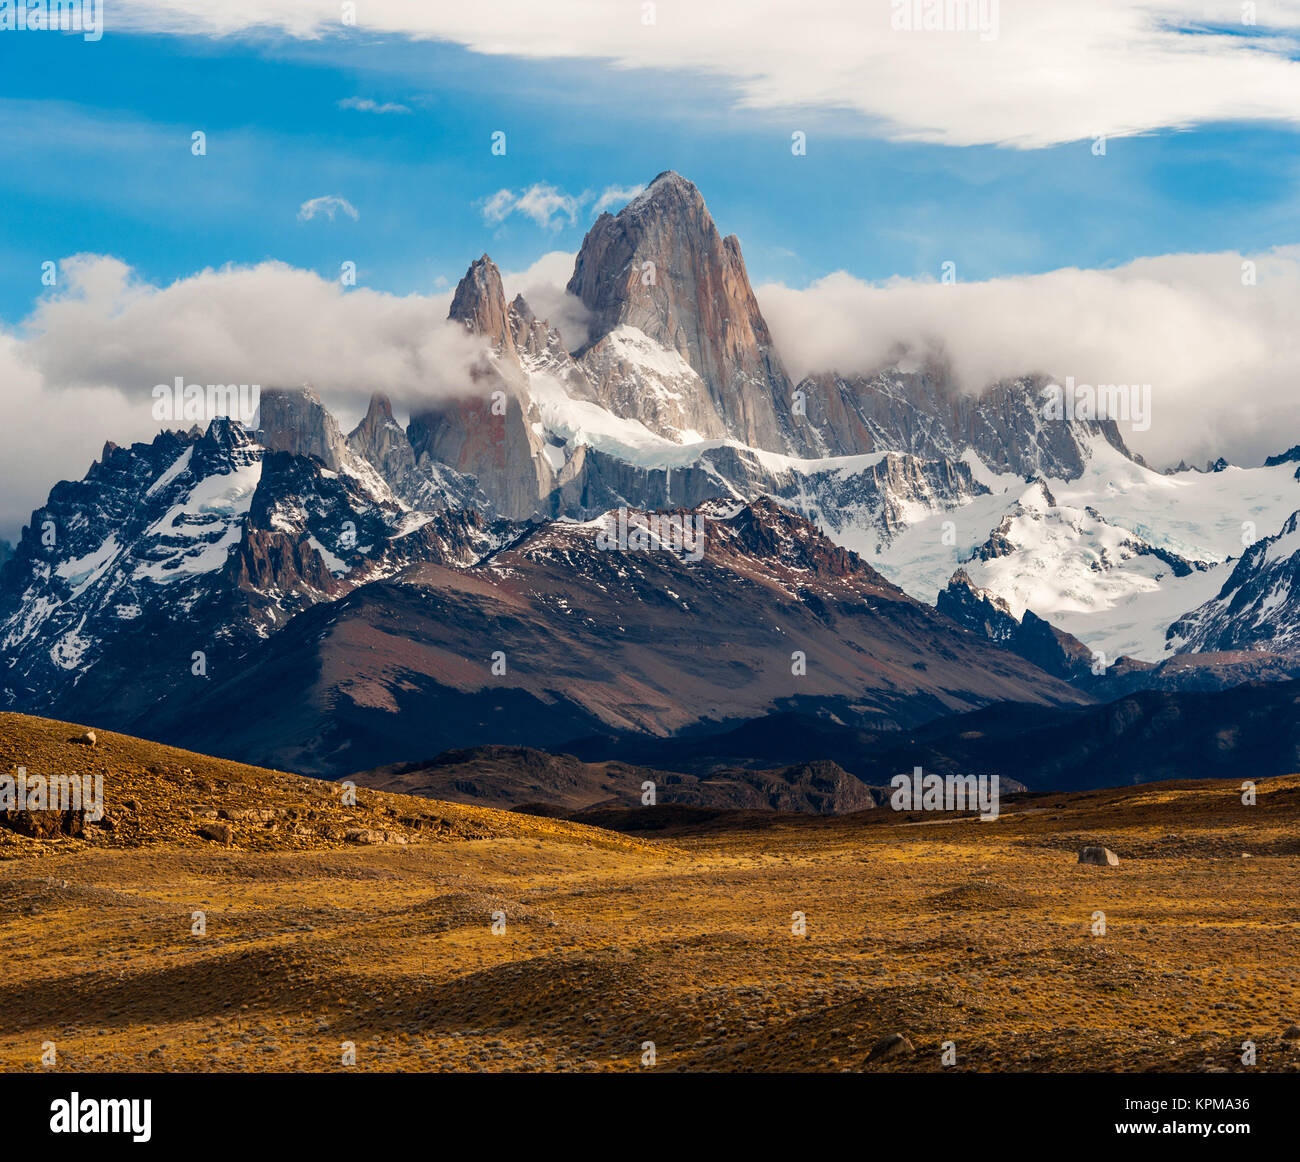 Fitz Roy Mountain, El Chalten, Patagonia, Glaciers National Park Argentina. - Stock Image